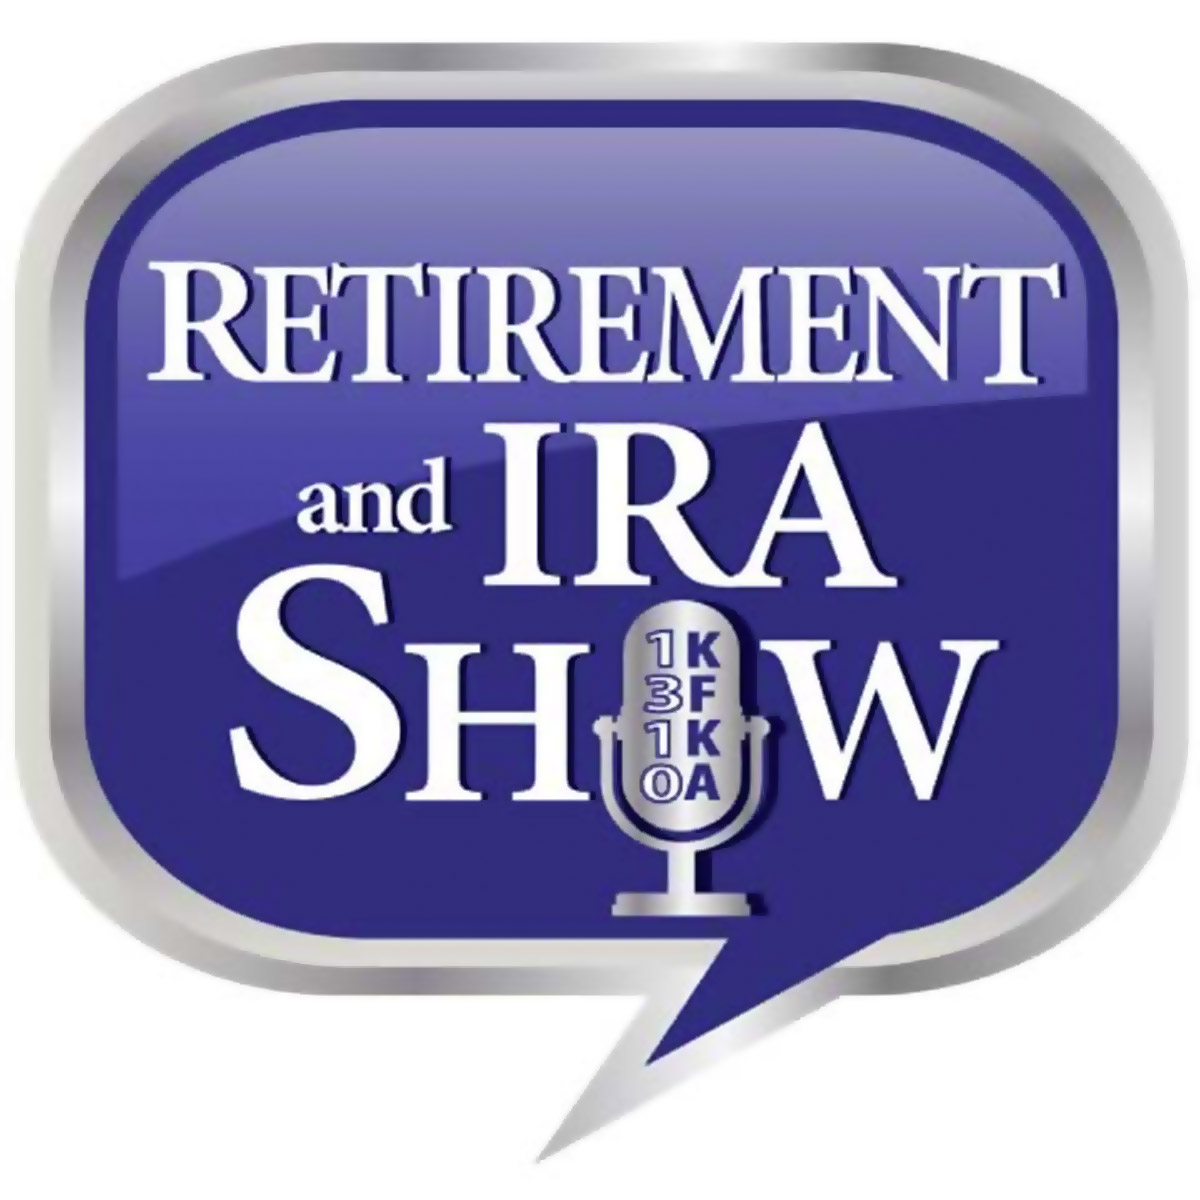 Artwork for The Retirement and IRA Show podcast